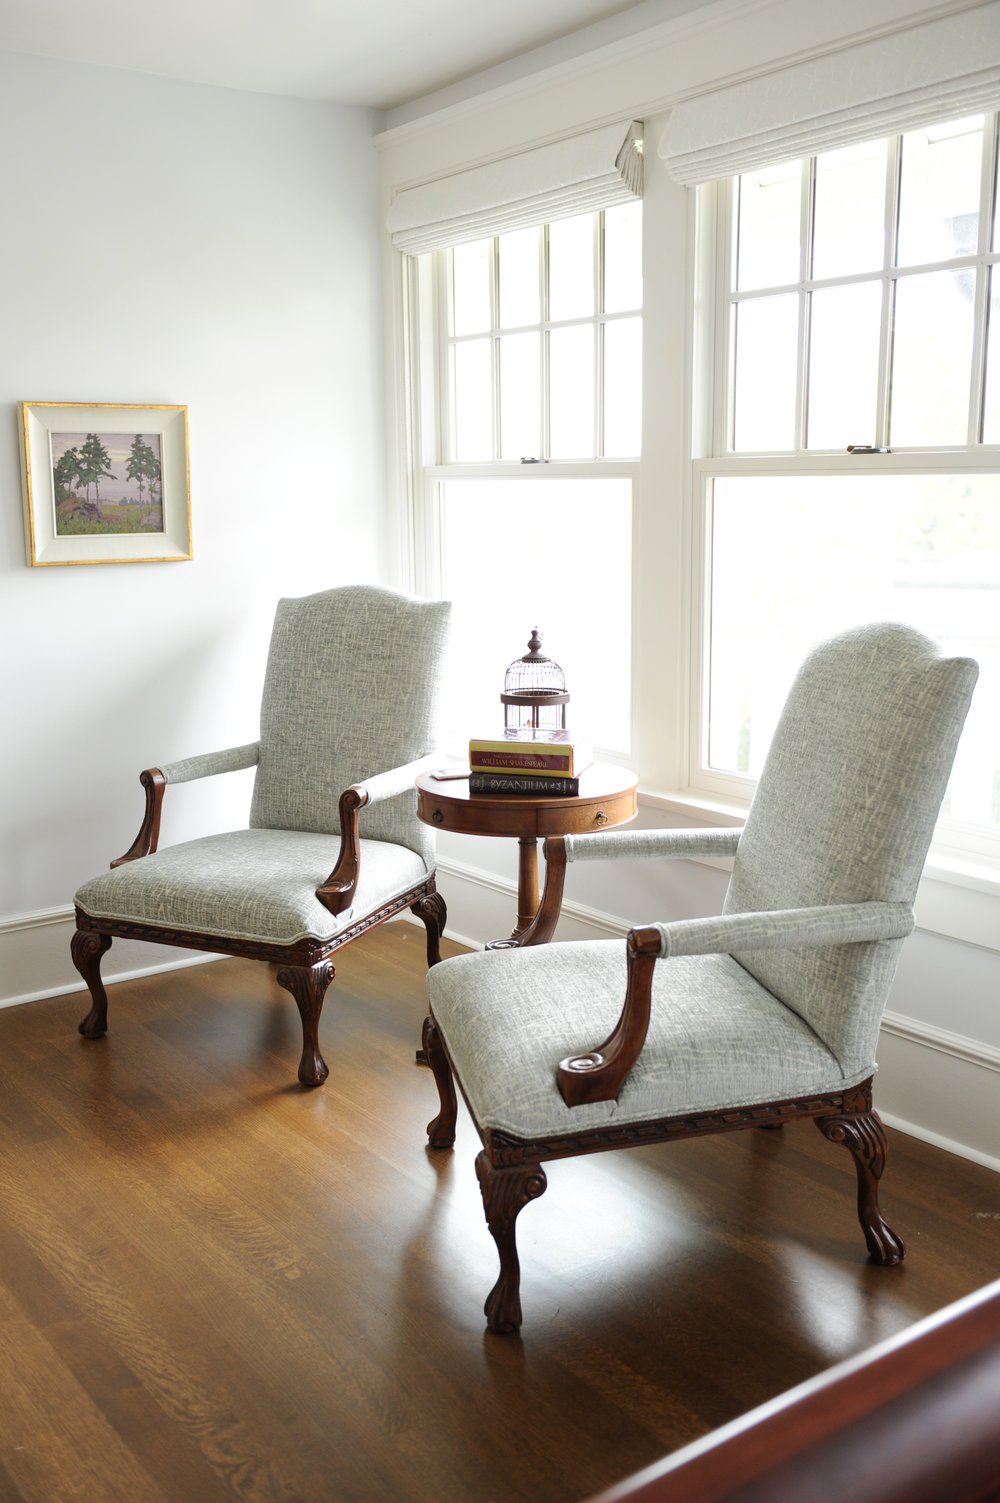 A round antique end table sits between two upholstered armchairs. A birdcage and a few books sit on top of the end table.